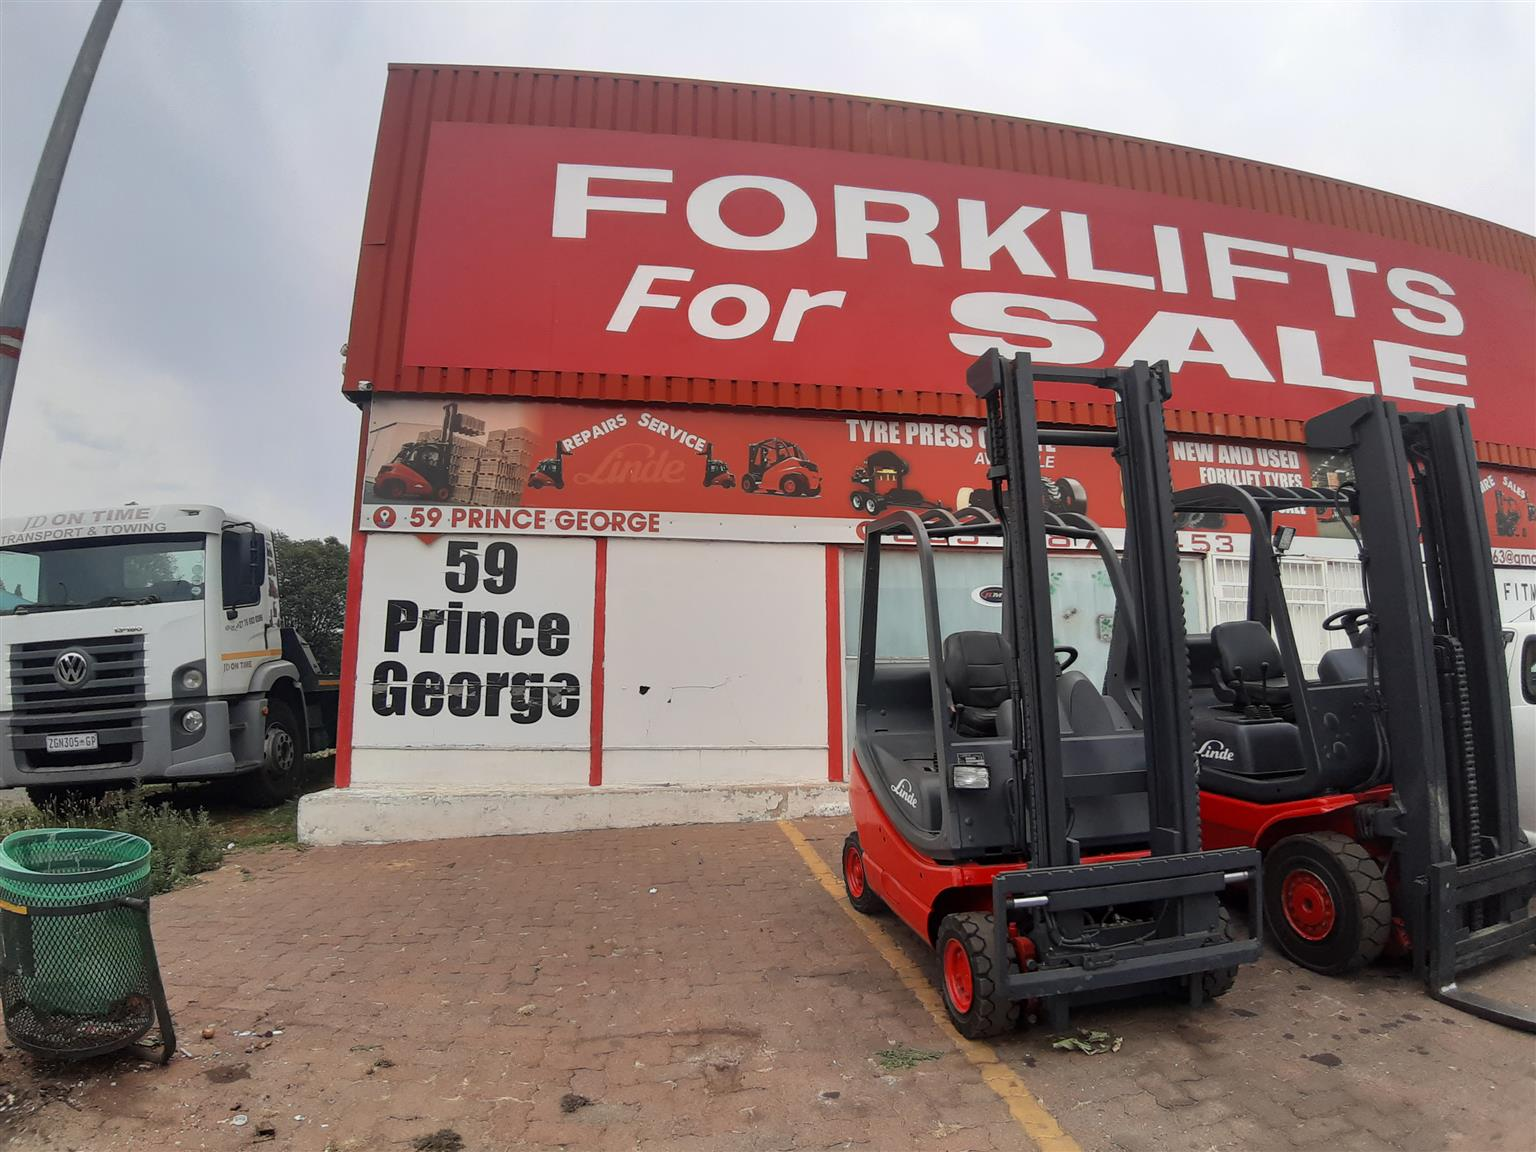 BUY & SELL OF FORKLIFTS - PARTS ALSO AVAILABLE